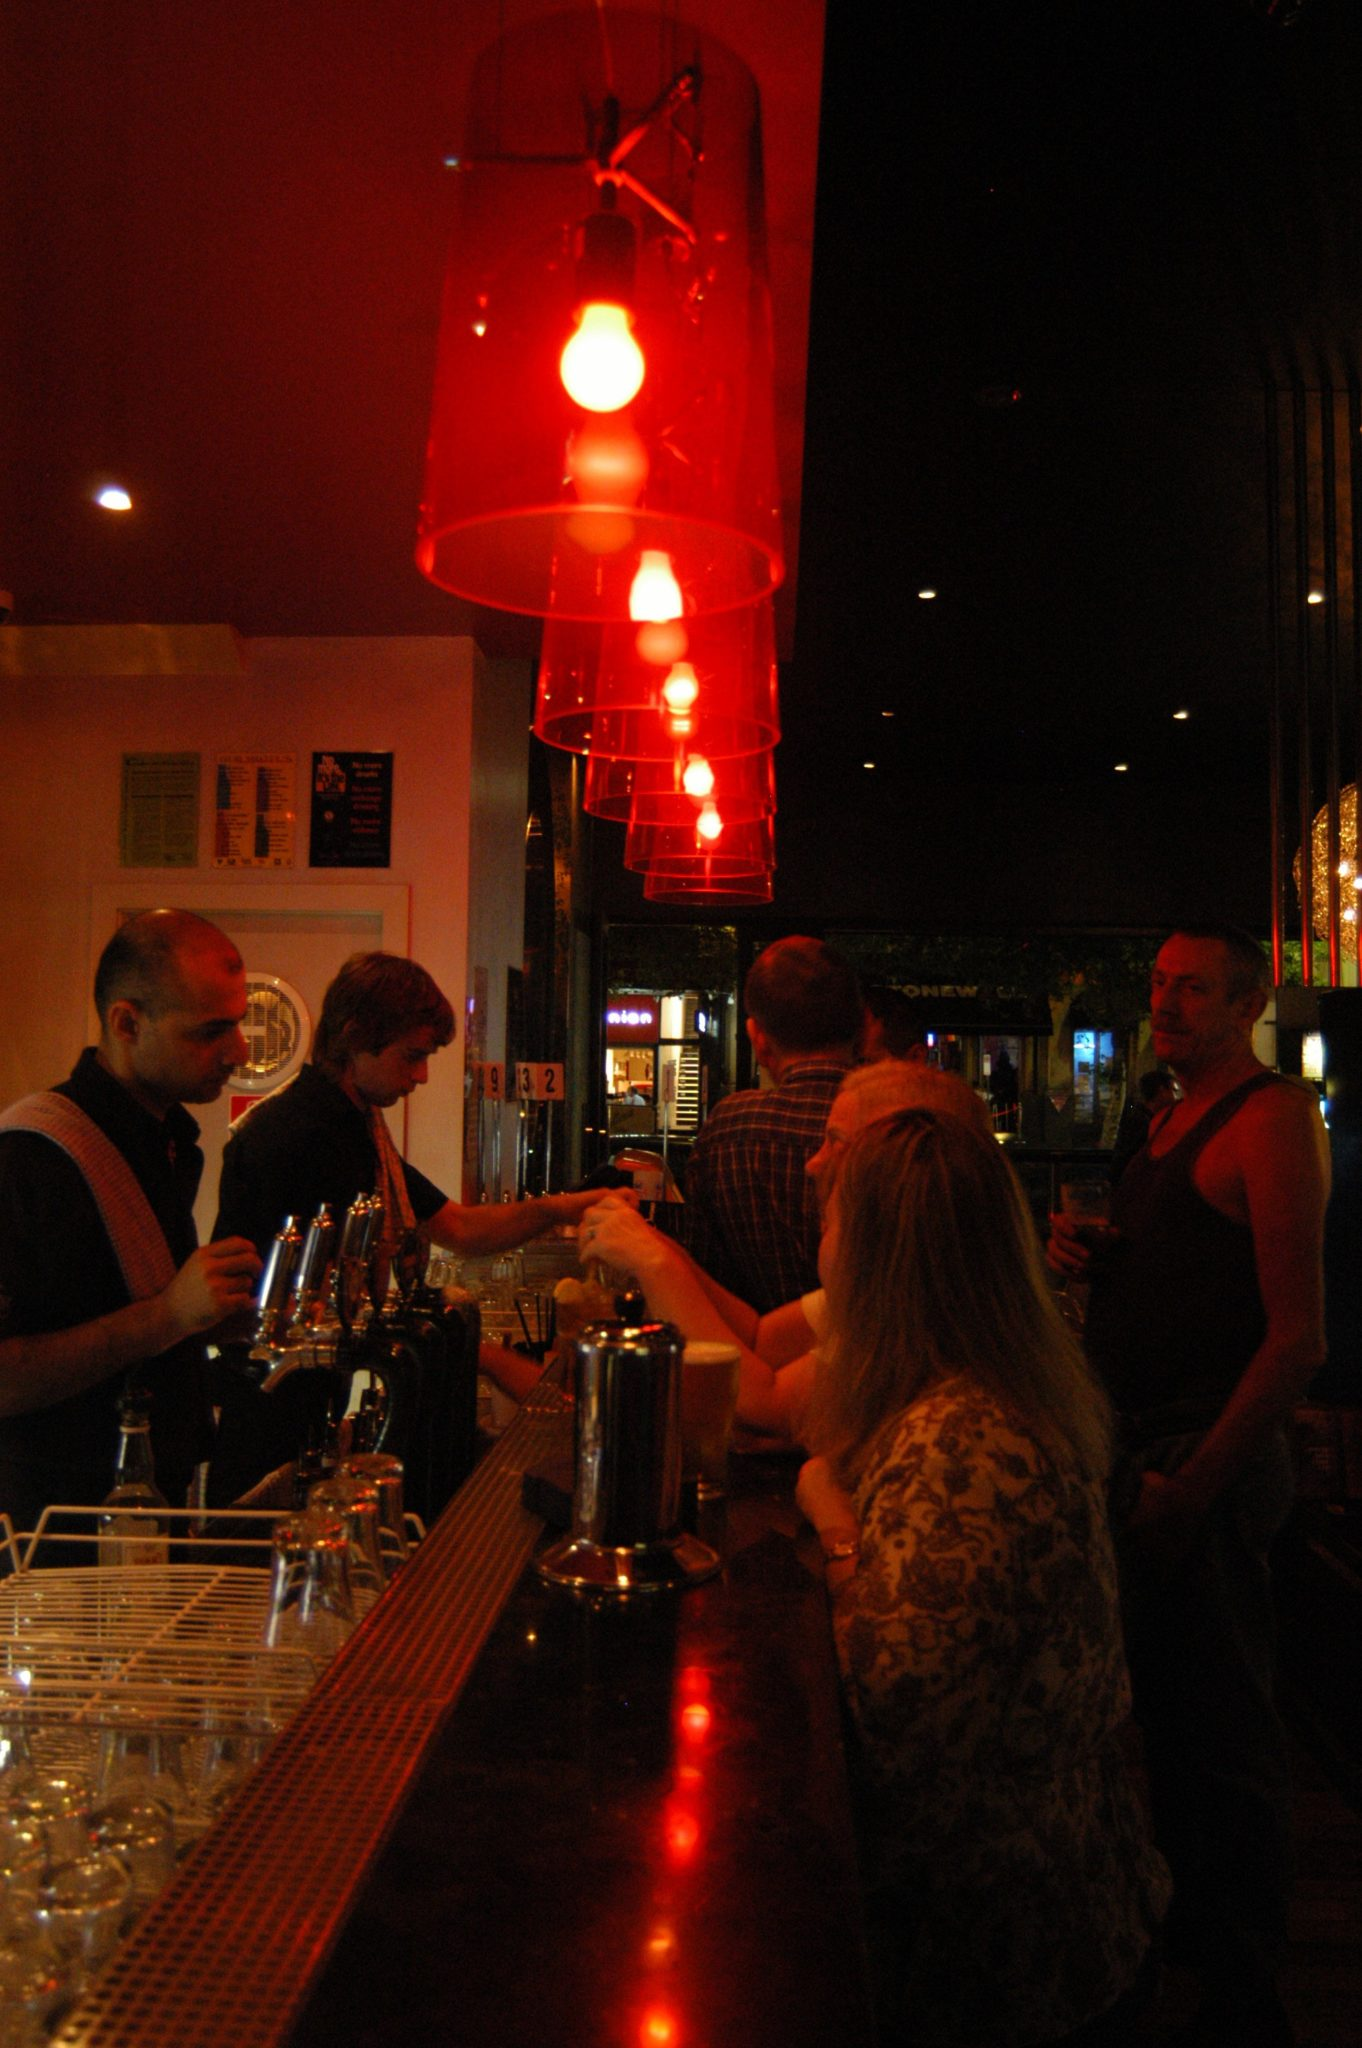 Mood lighting for clubs and bars by Limelight Australia